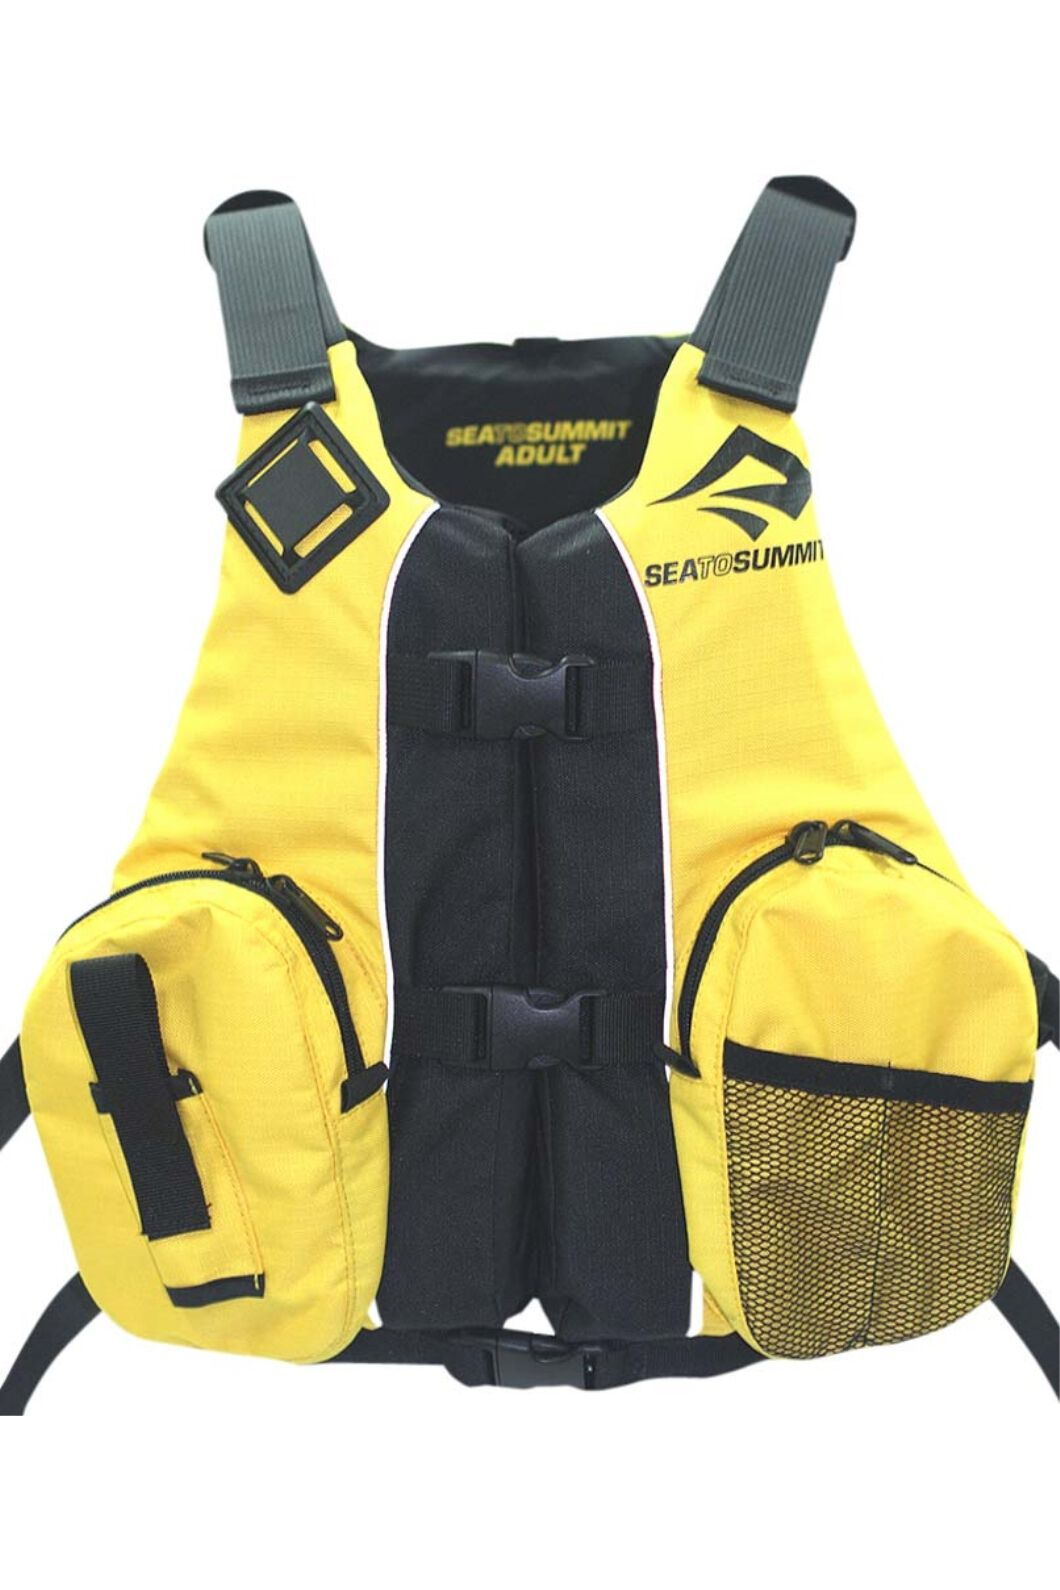 Sea to Summit Multifit Fishing PFD 50, None, hi-res